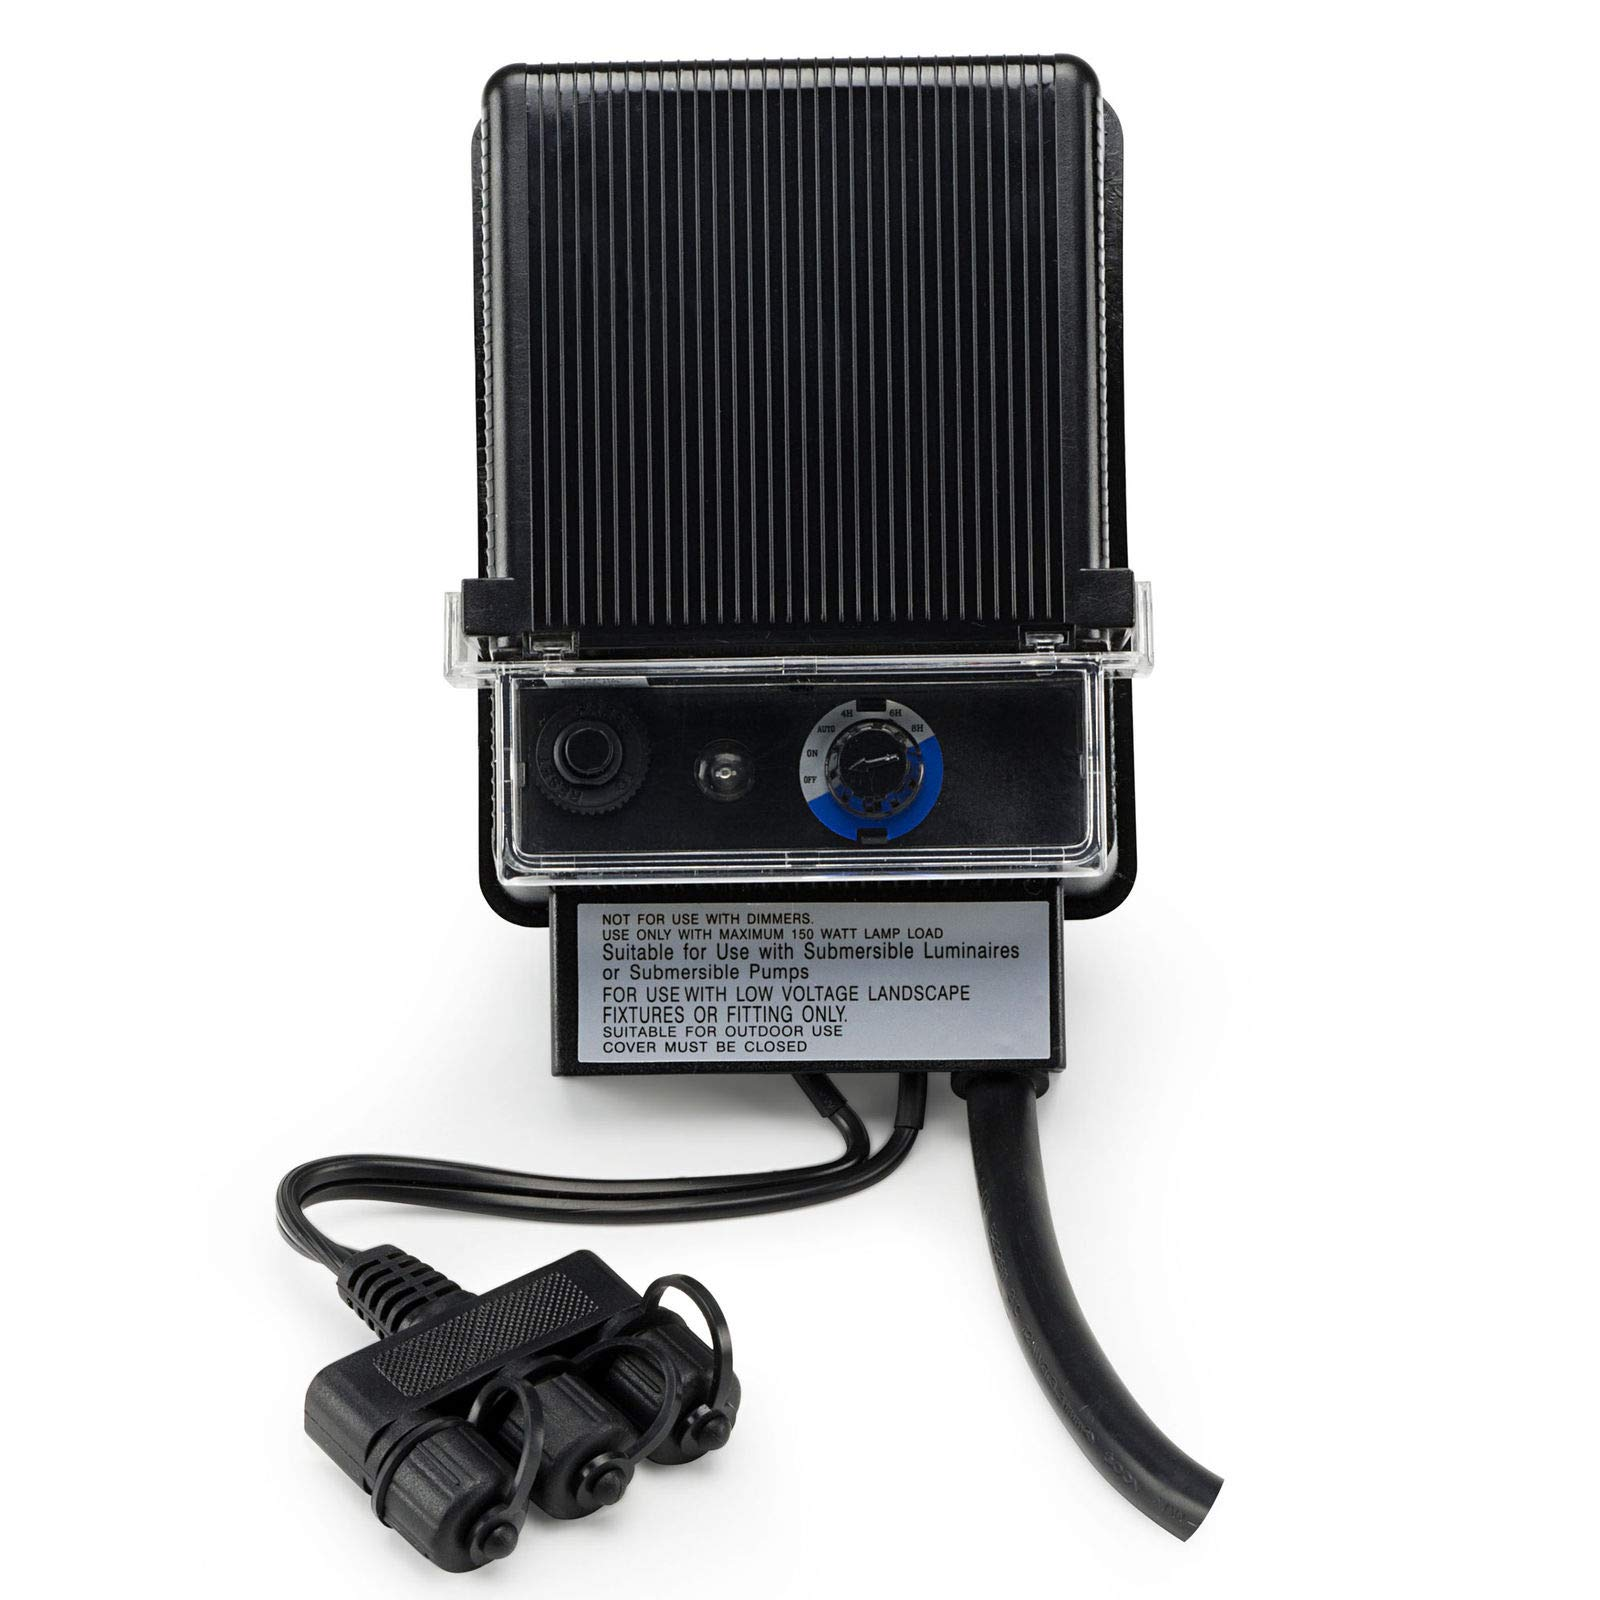 zwan Garden and Pond 150W Transformer with Photocell and Time Intervals with Ebook